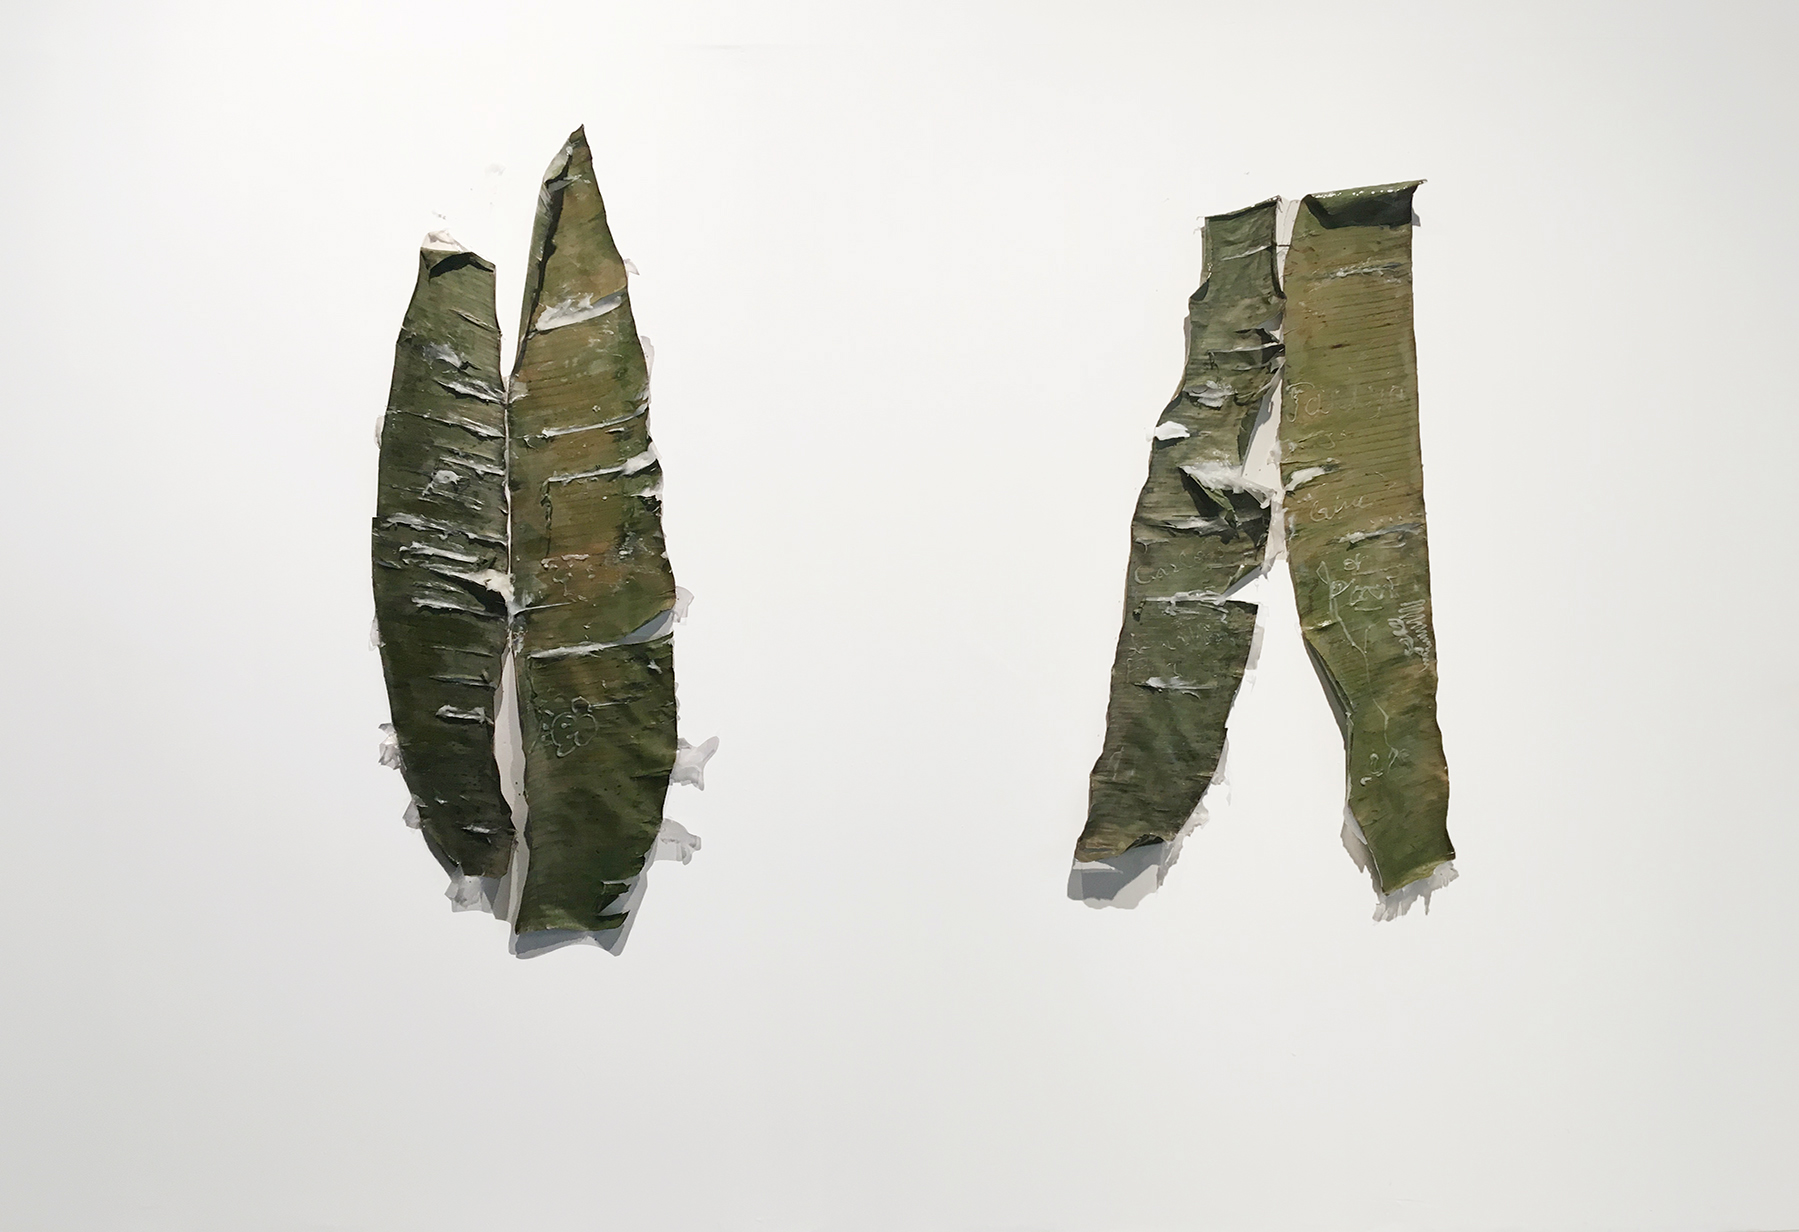 Untitled, Anthropometry Diptych (after Yves Klein)  viewers using plastic syringes containing petrolatum (Vicks VapoRub) on plantain leaves lined with resin  48 x 24 in.each  2018